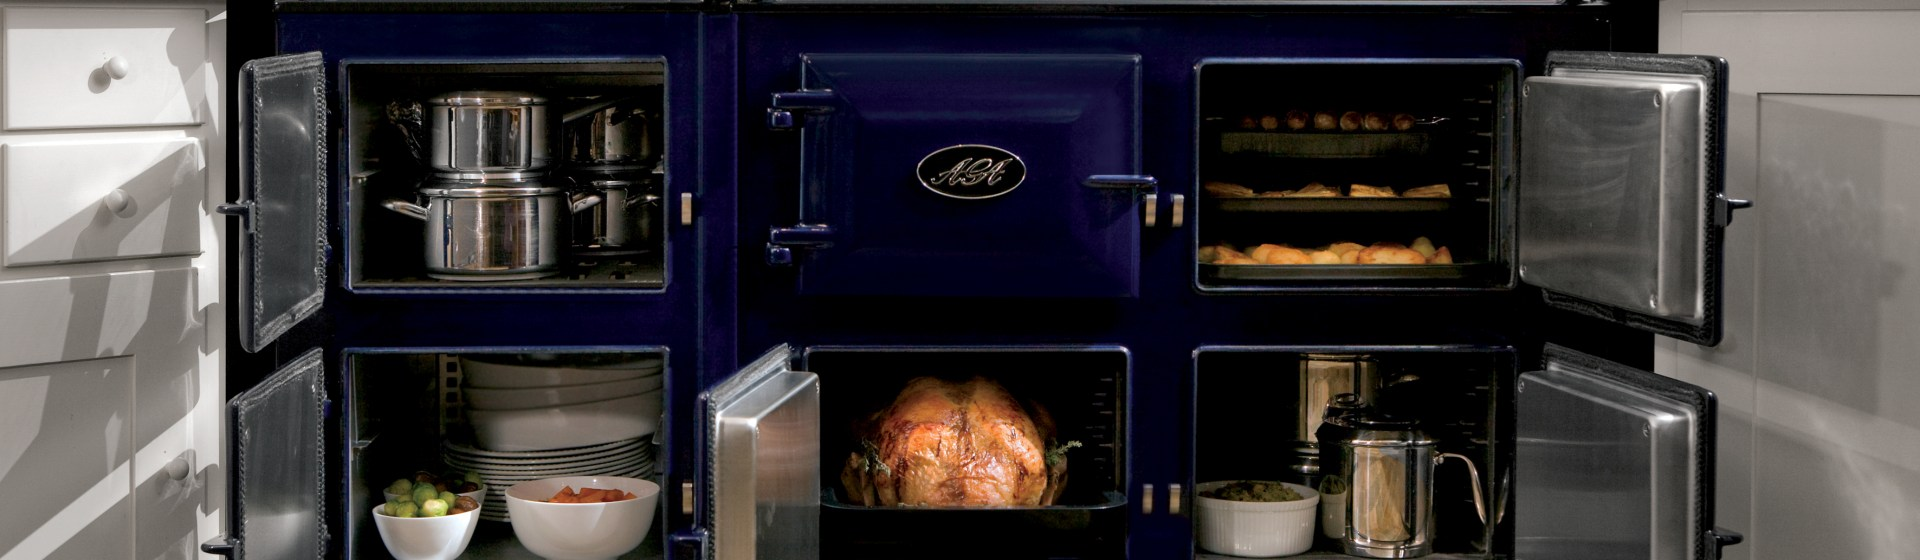 Will America Go Gaga For AGA? The Fancy British Stove Is